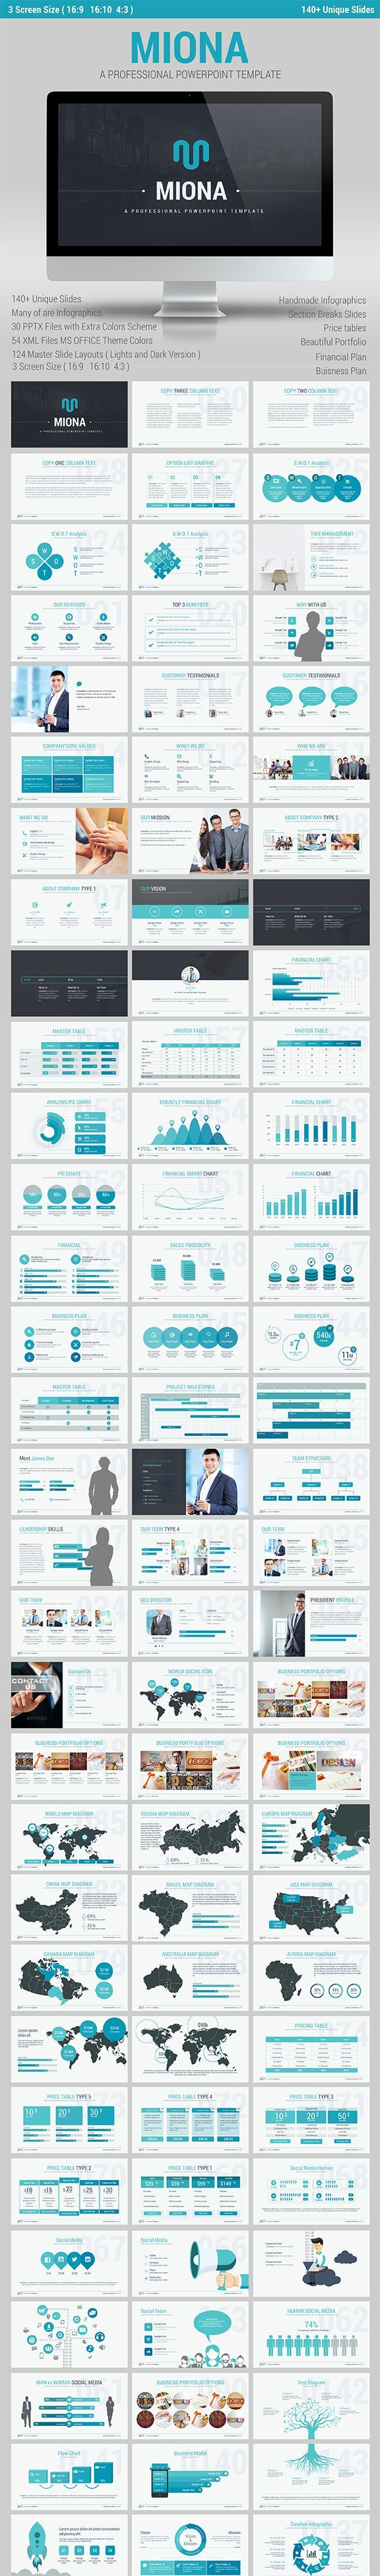 Miona multipurpose powerpoint template powerpoint templates miona multipurpose powerpoint template powerpoint templates toneelgroepblik Gallery